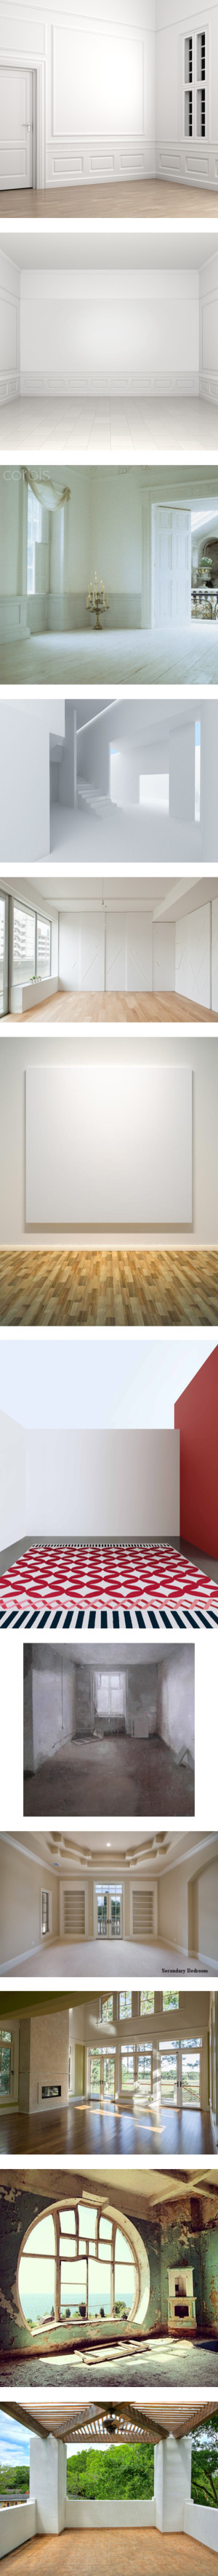 Empty Rooms 100 By Troff On Polyvore Featuring Rooms